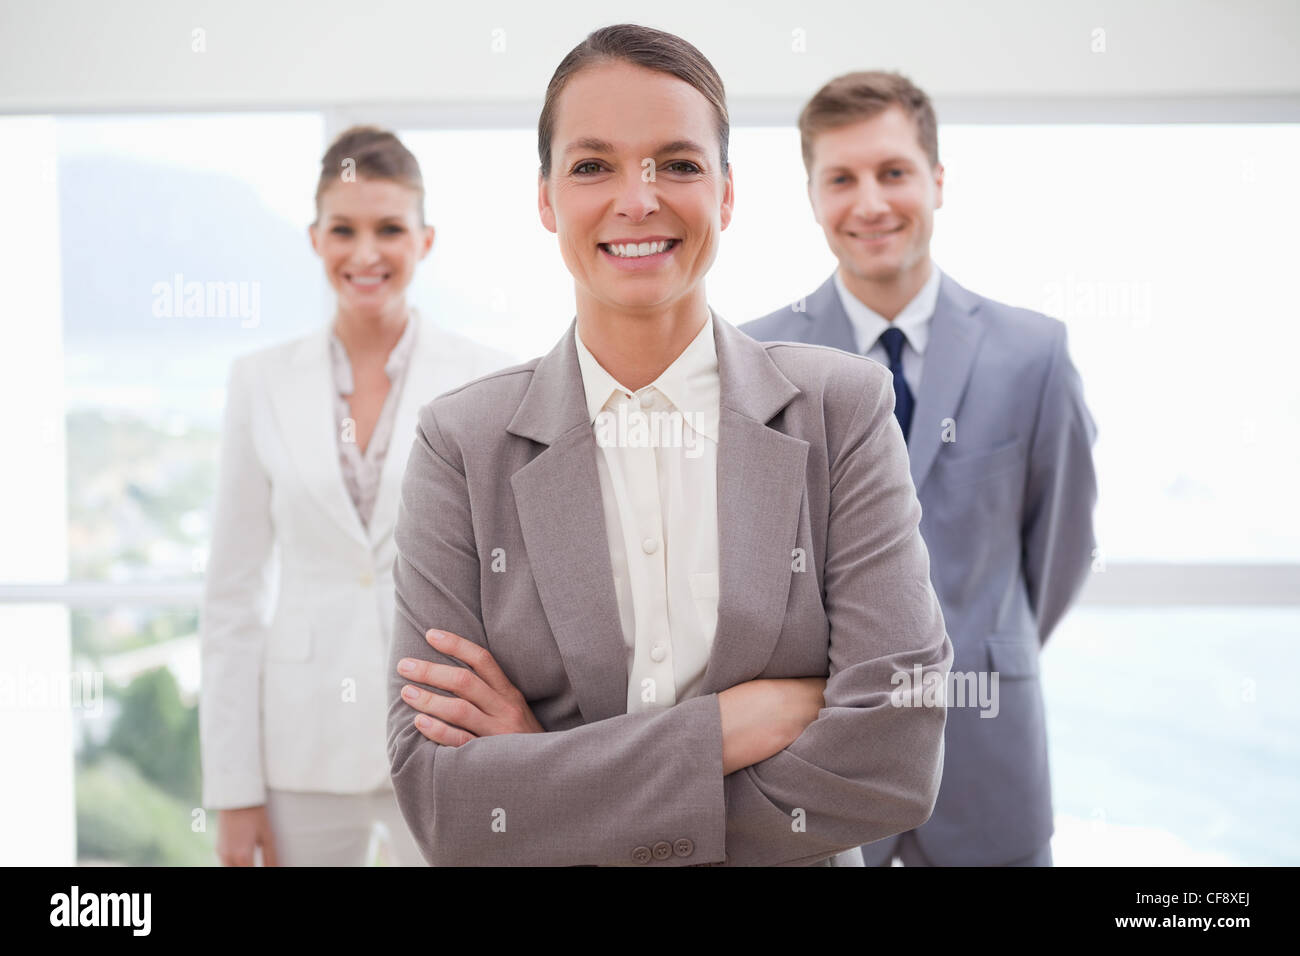 Business consultant with arms folded - Stock Image